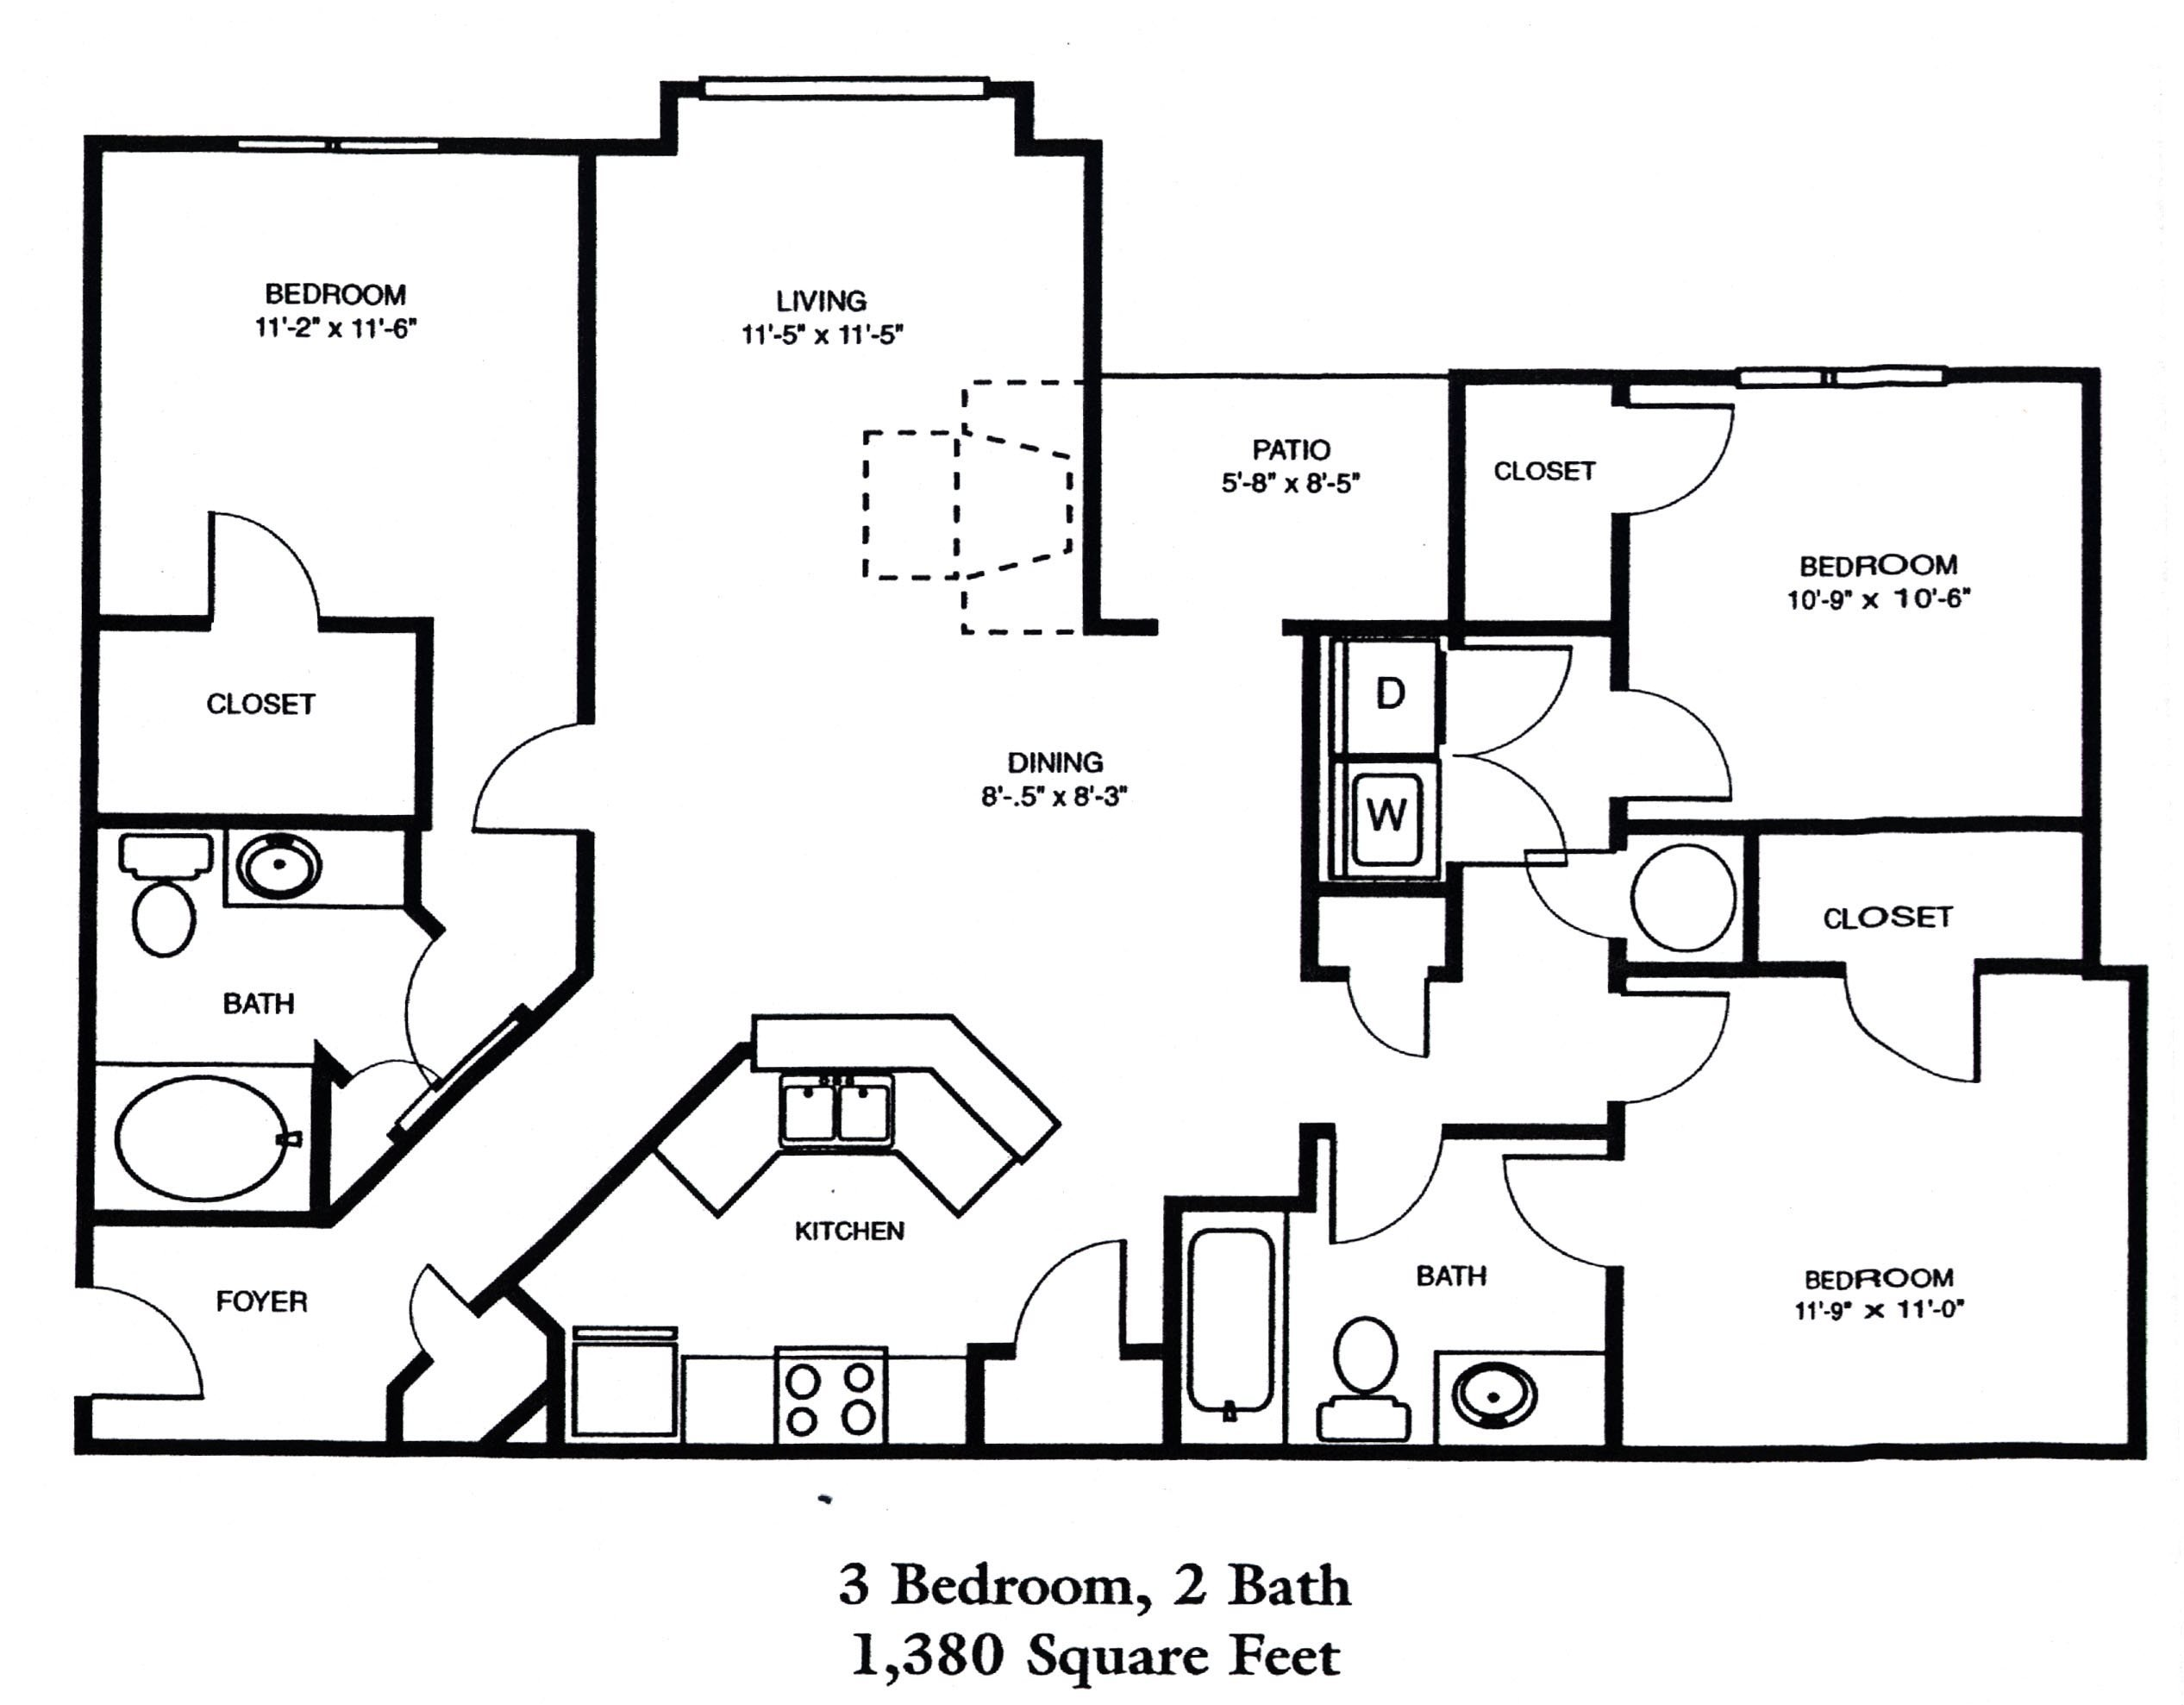 3 Bedroom | 2 Bath Floor Plan 4